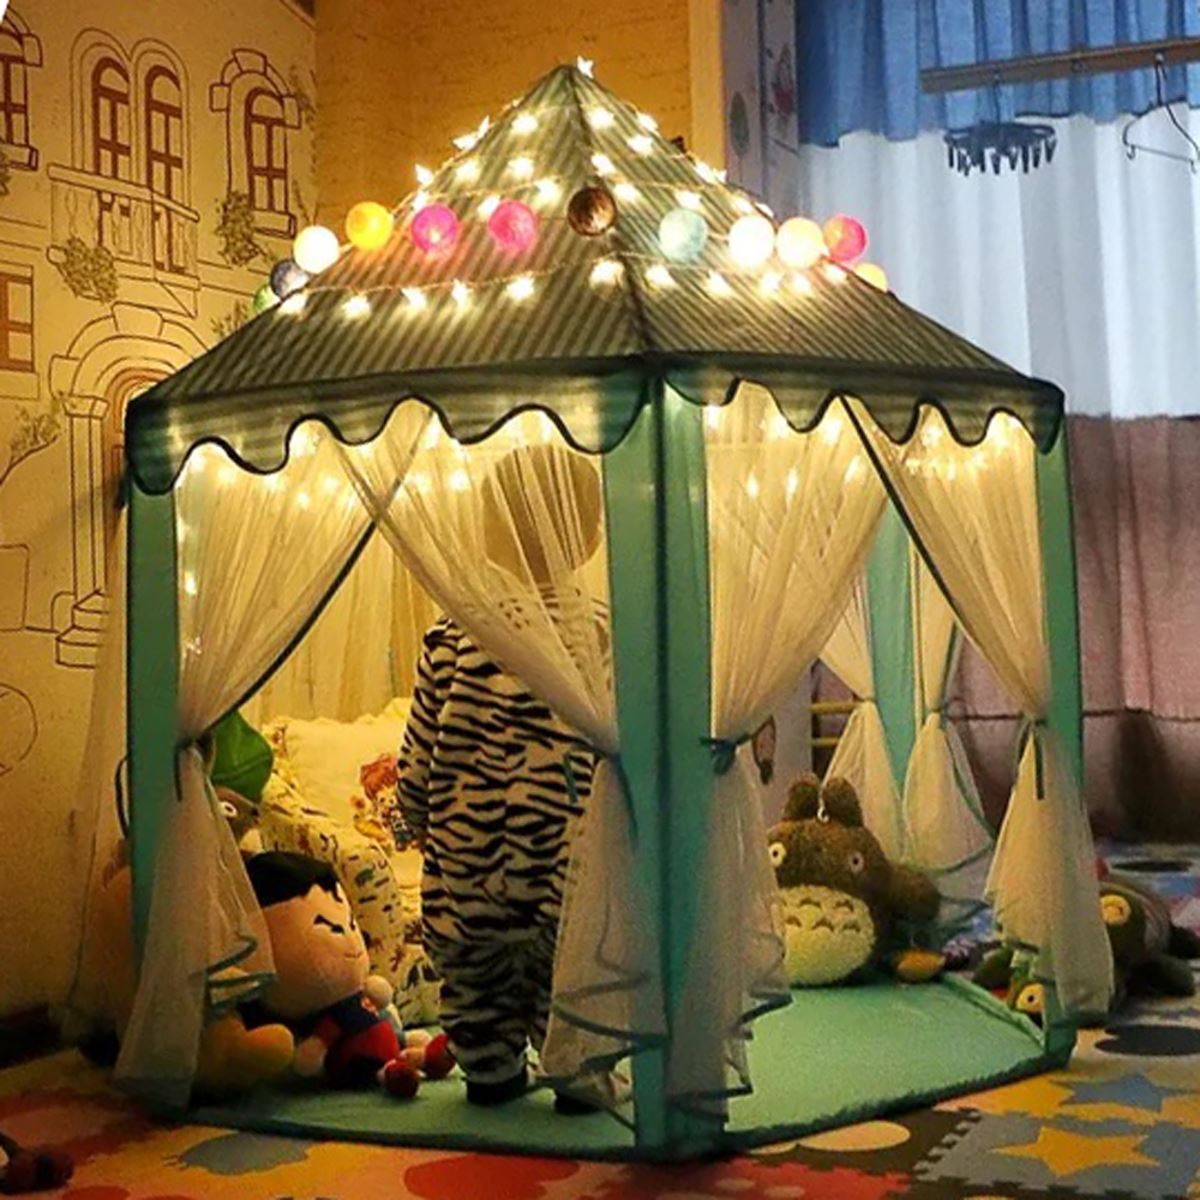 Portable Princess Castle Play Tent With Led Light Children Activity Fairy House kids Funny Indoor Outdoor Playhouse playing Toy